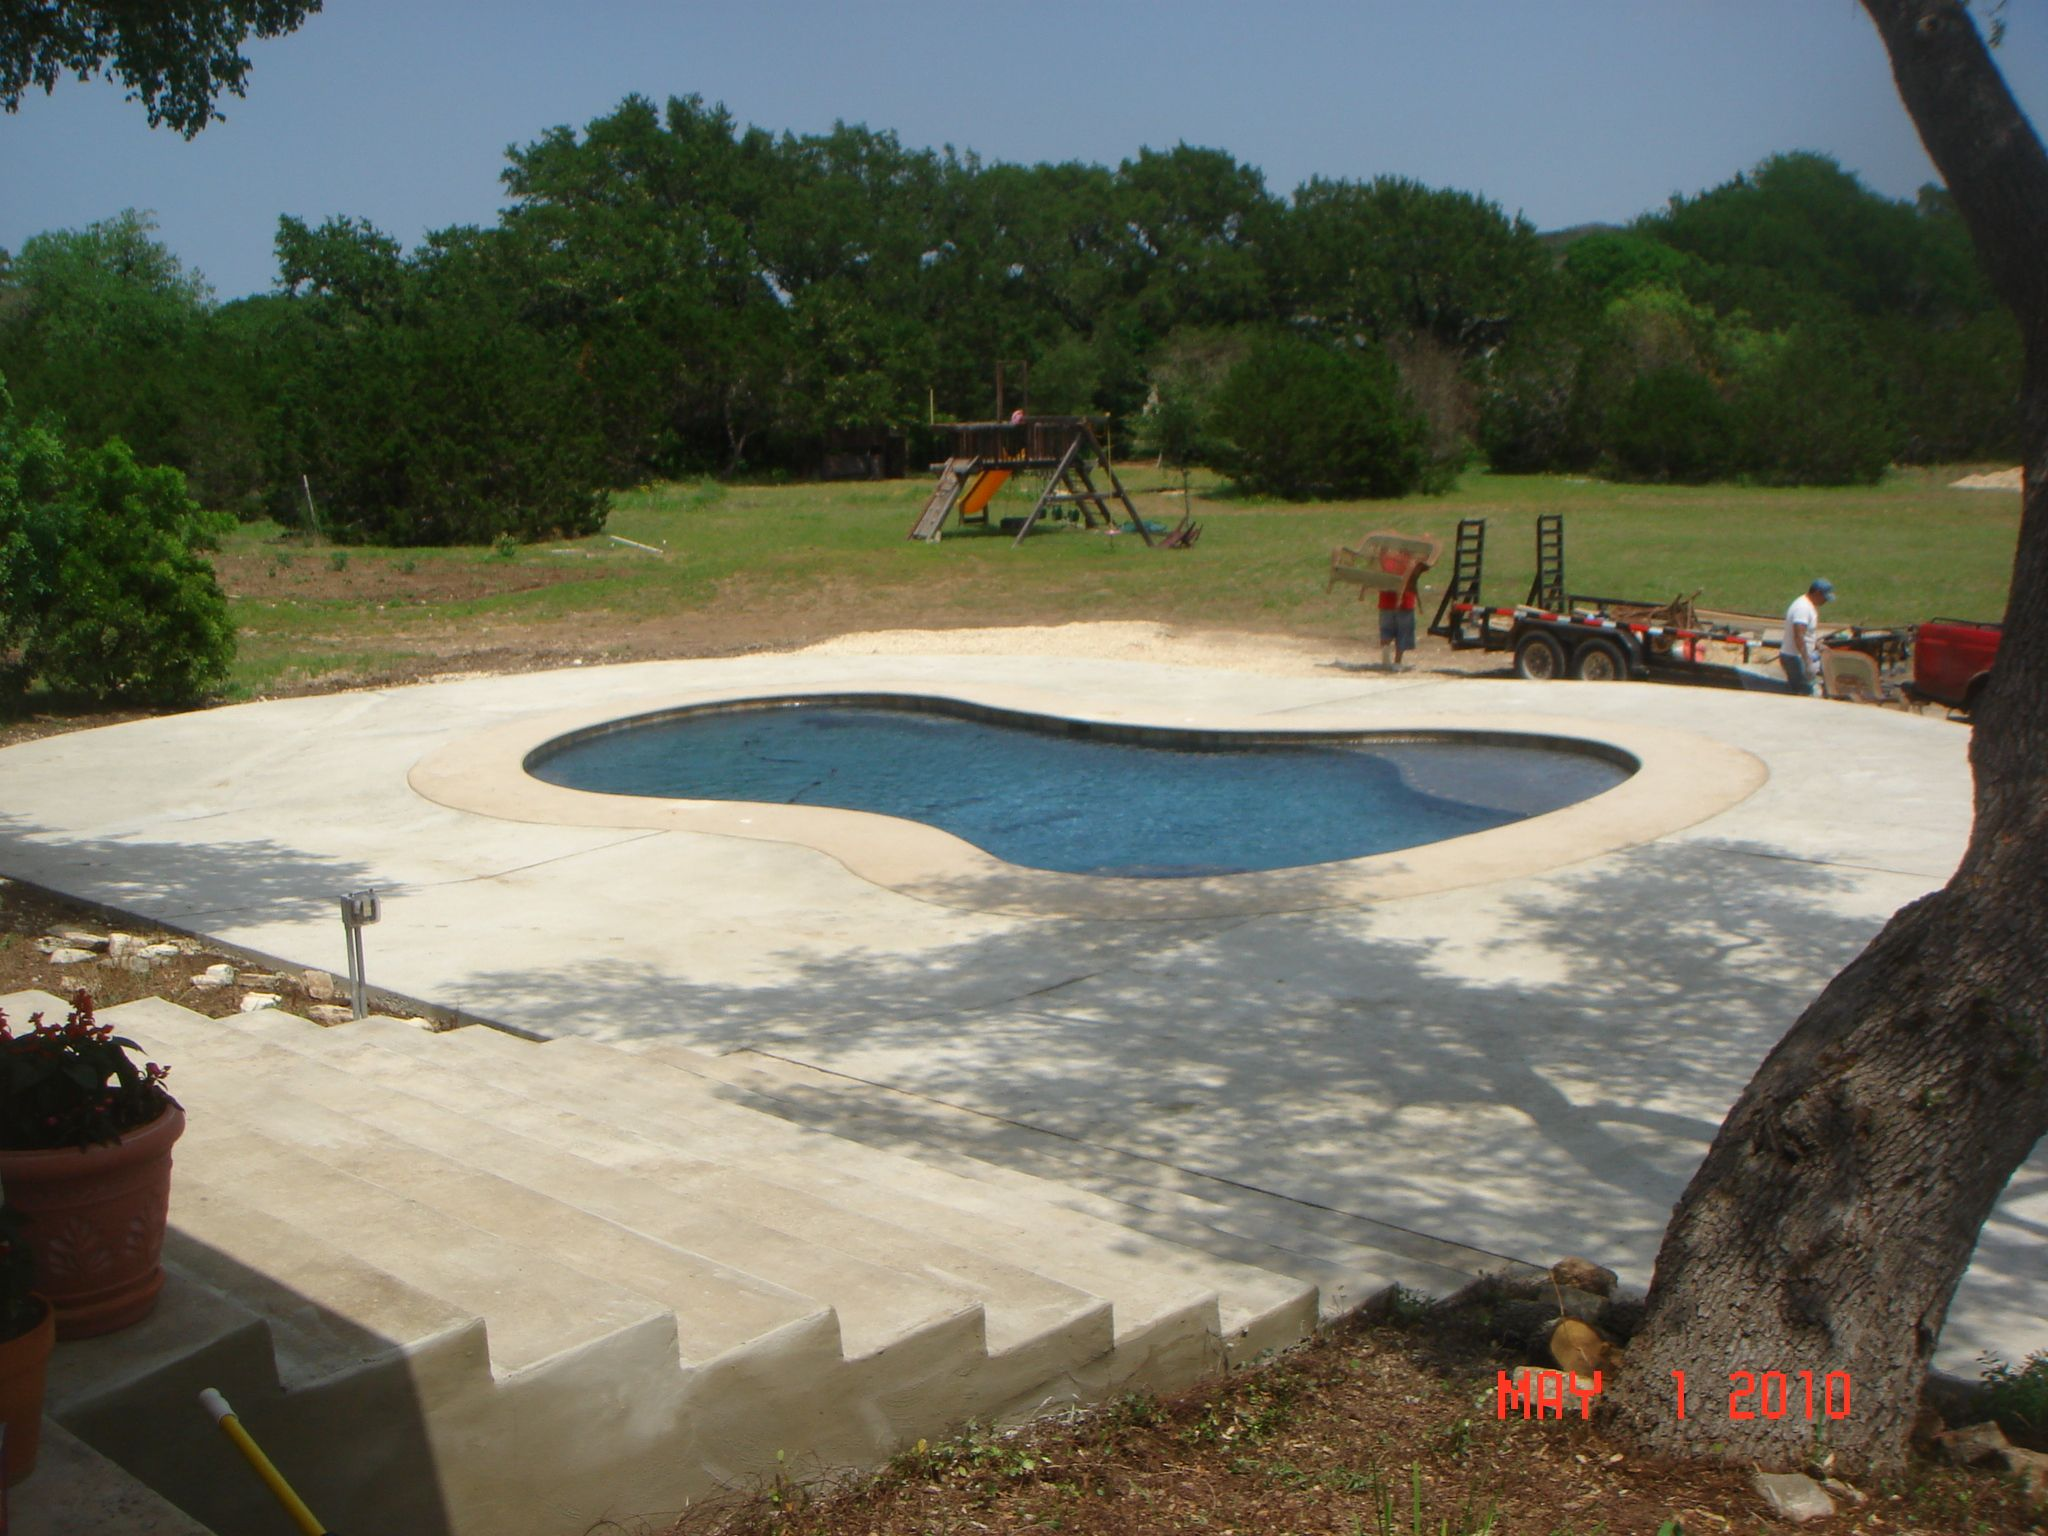 Pool Deck Resurfacing Our Work Easter Concrete Construction With ...